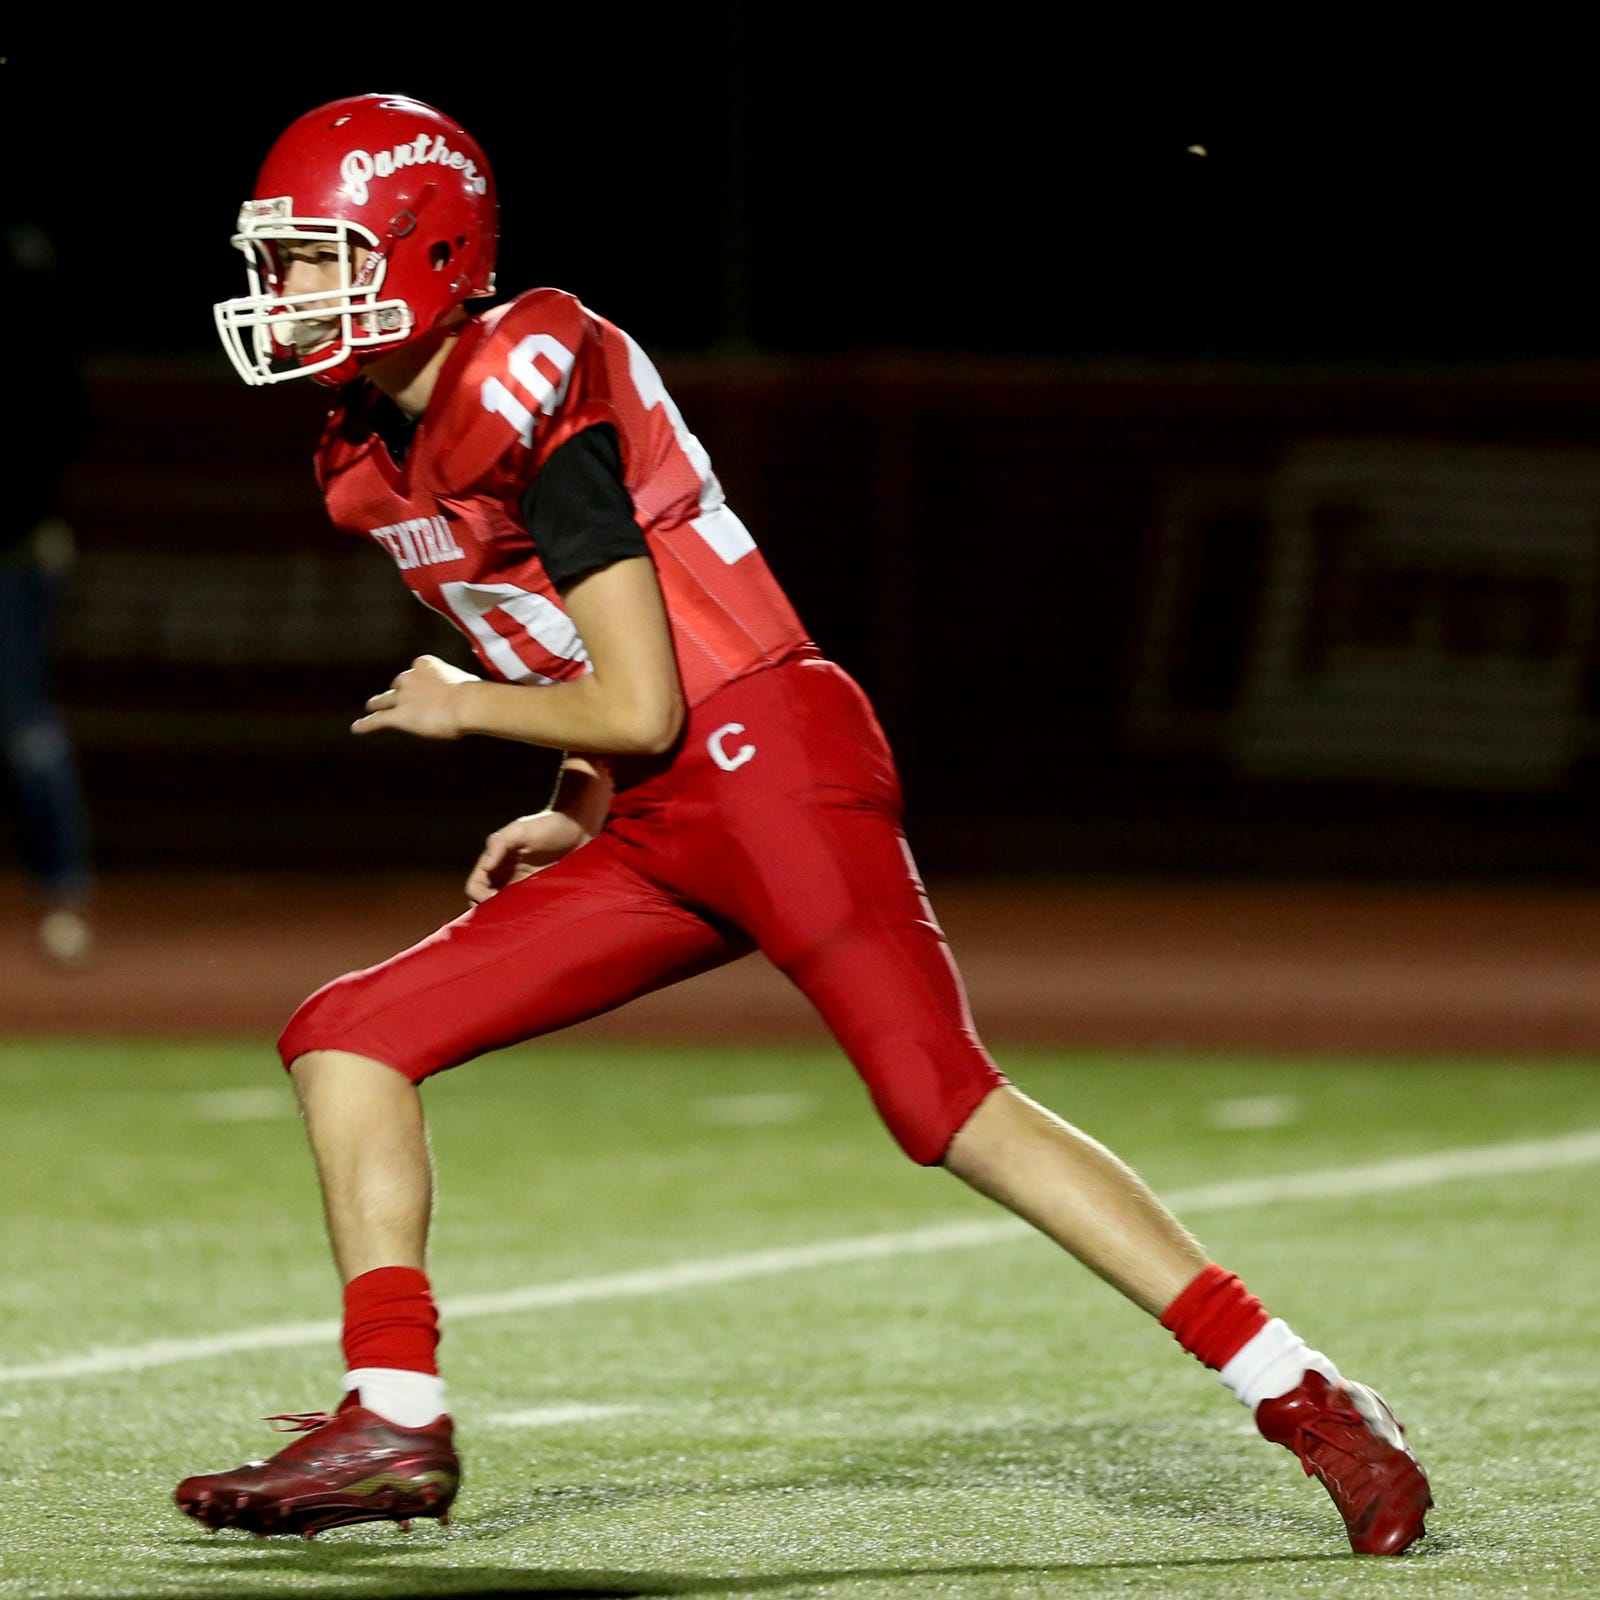 Central freshman QB Brooks Ferguson excels in win over North Salem